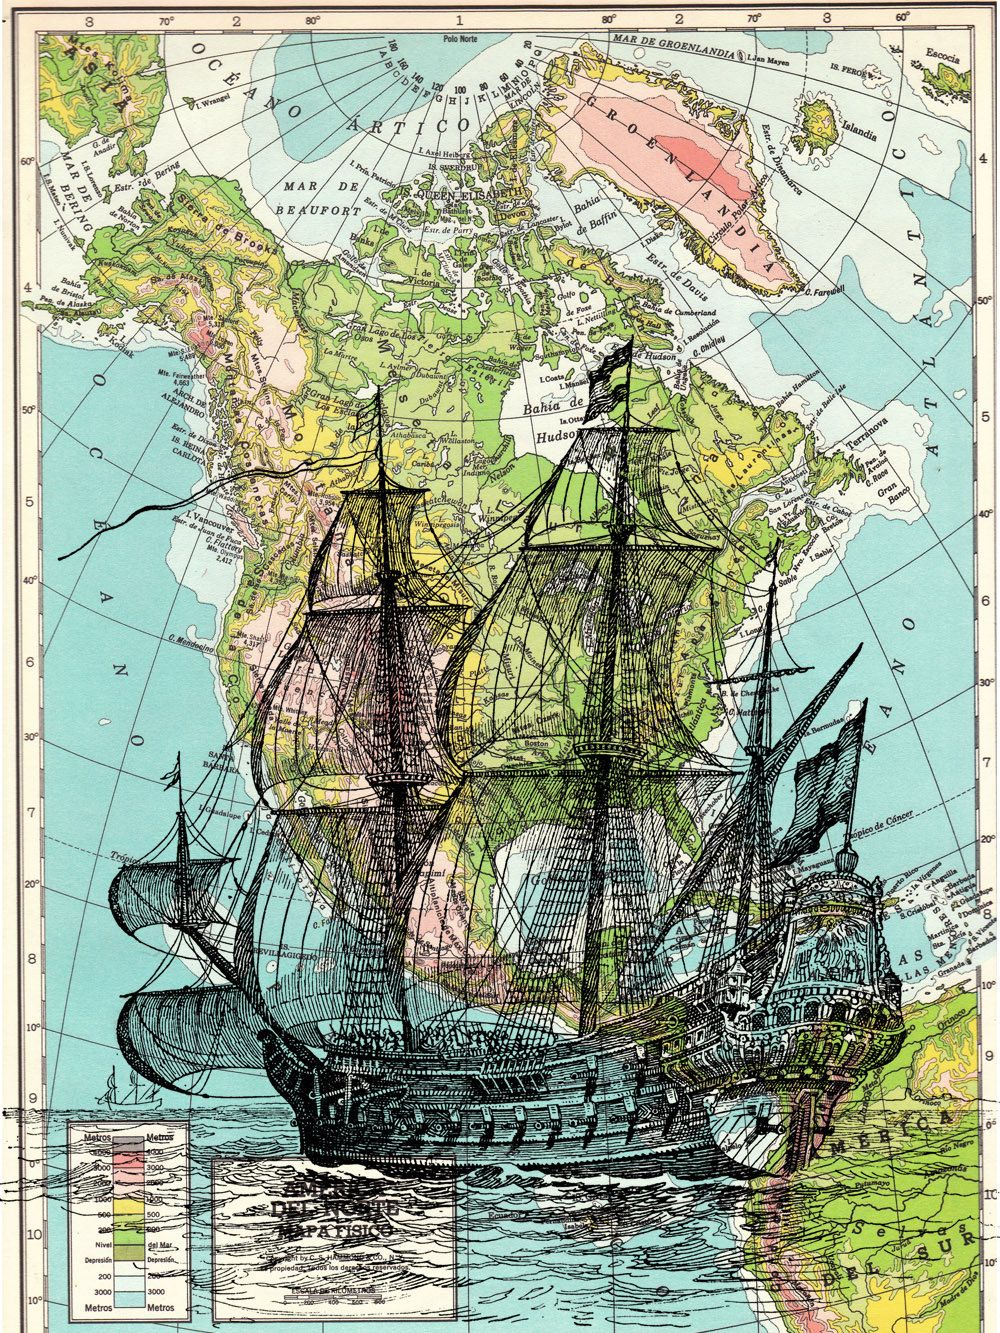 Old Ship On Vintage Map Print The Best Choice For Gifts Sea113b Vintage Book Art Old Book Art Book Art